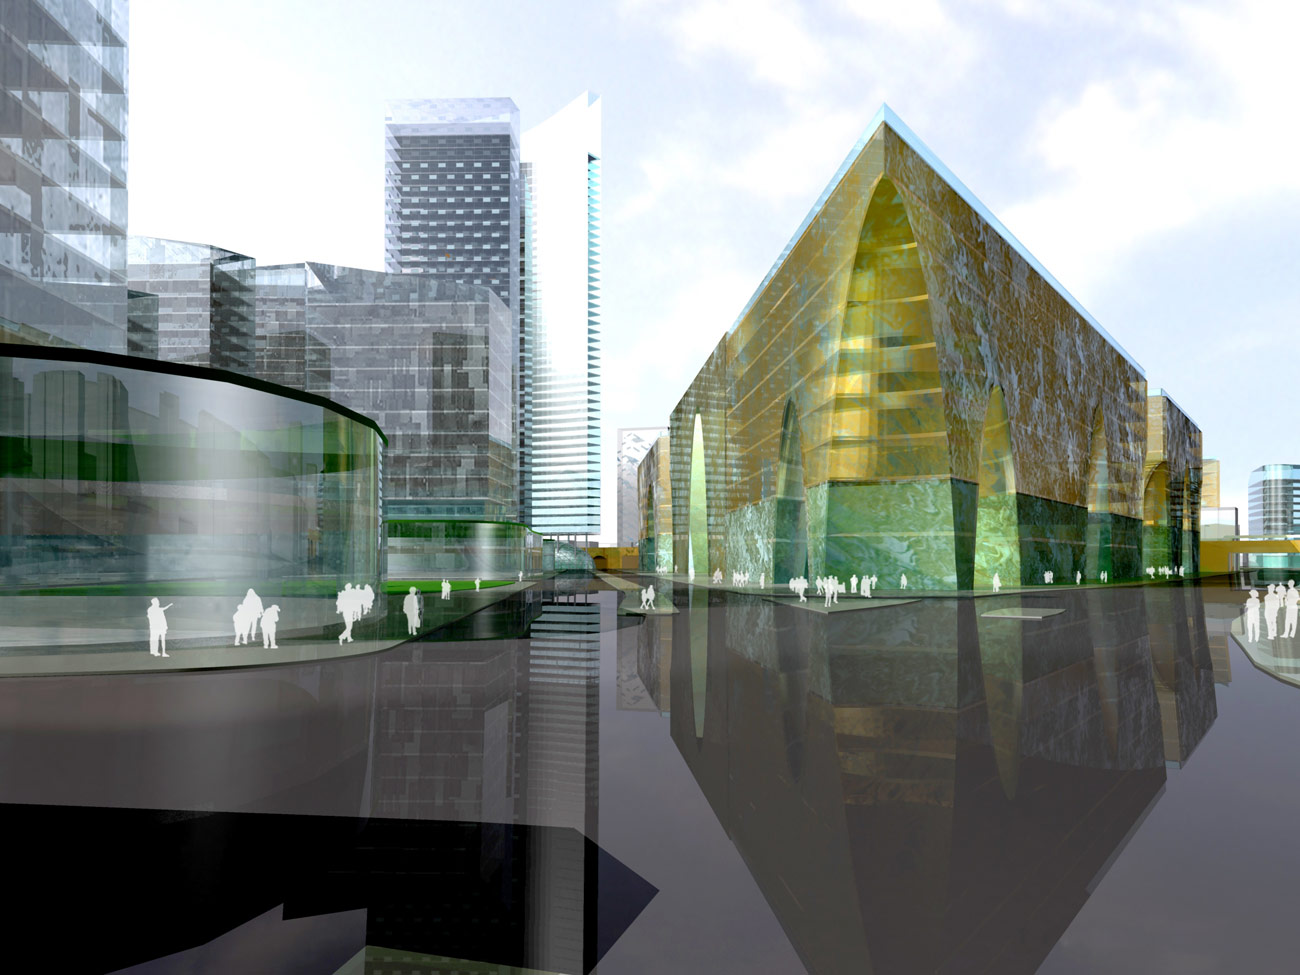 Elephant & Castle Master Plan View by Marks Barfield Architects